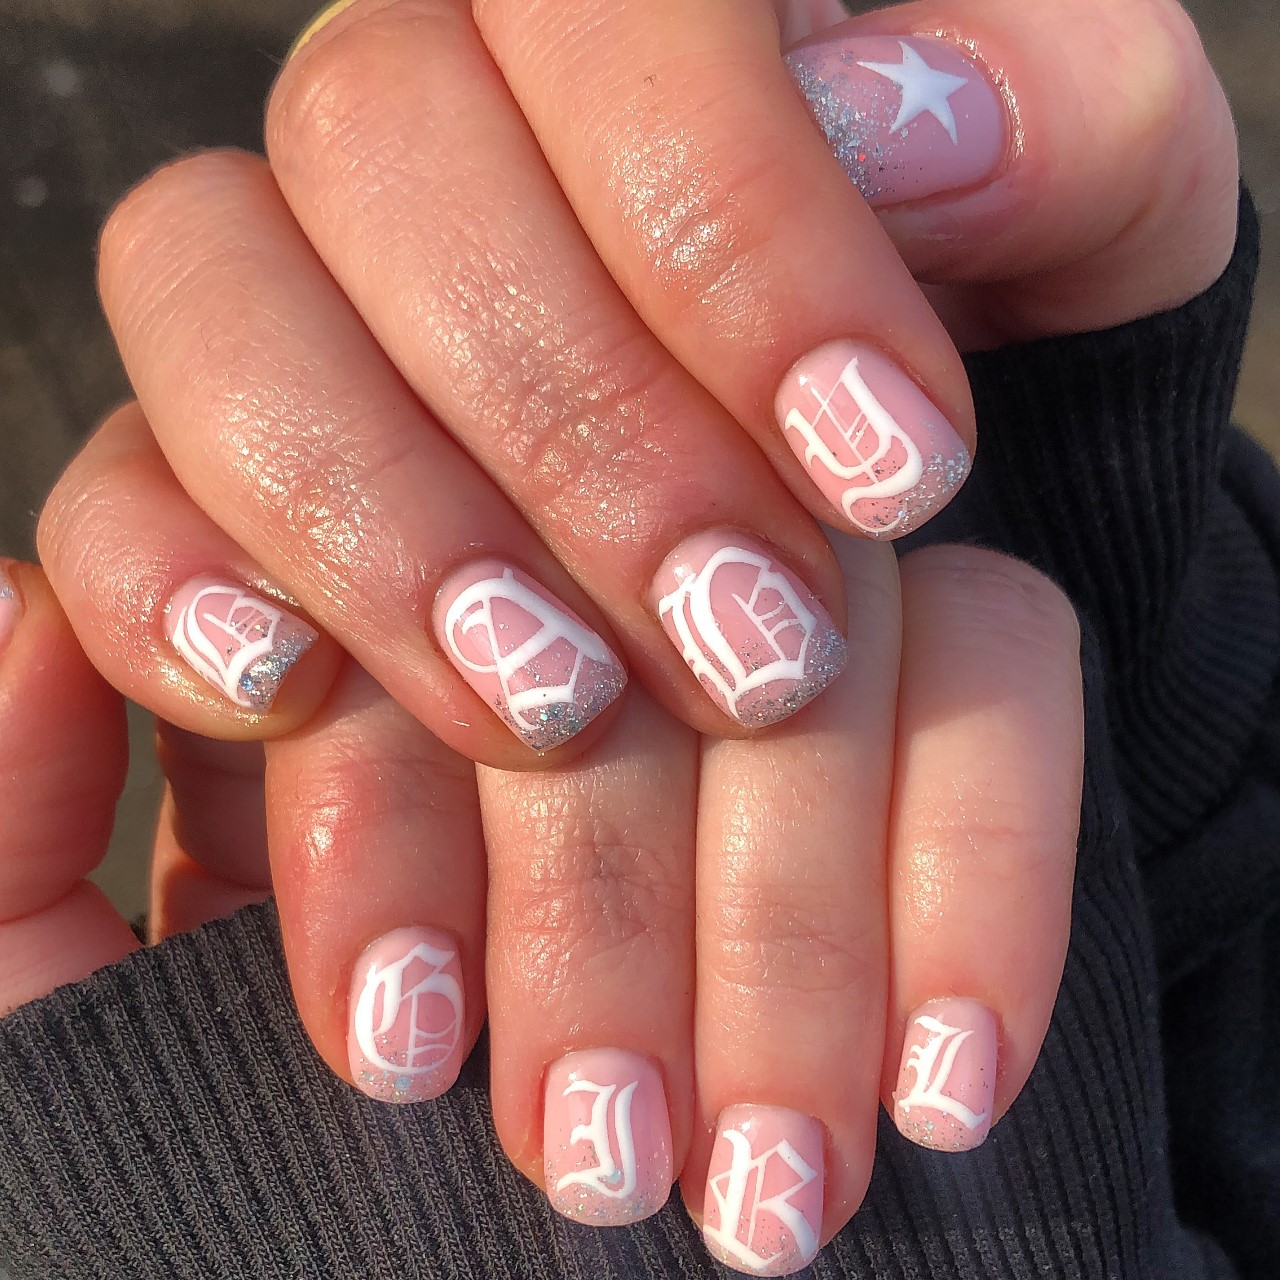 Beginners gel nail course with nail art voucher (DATE TBC)